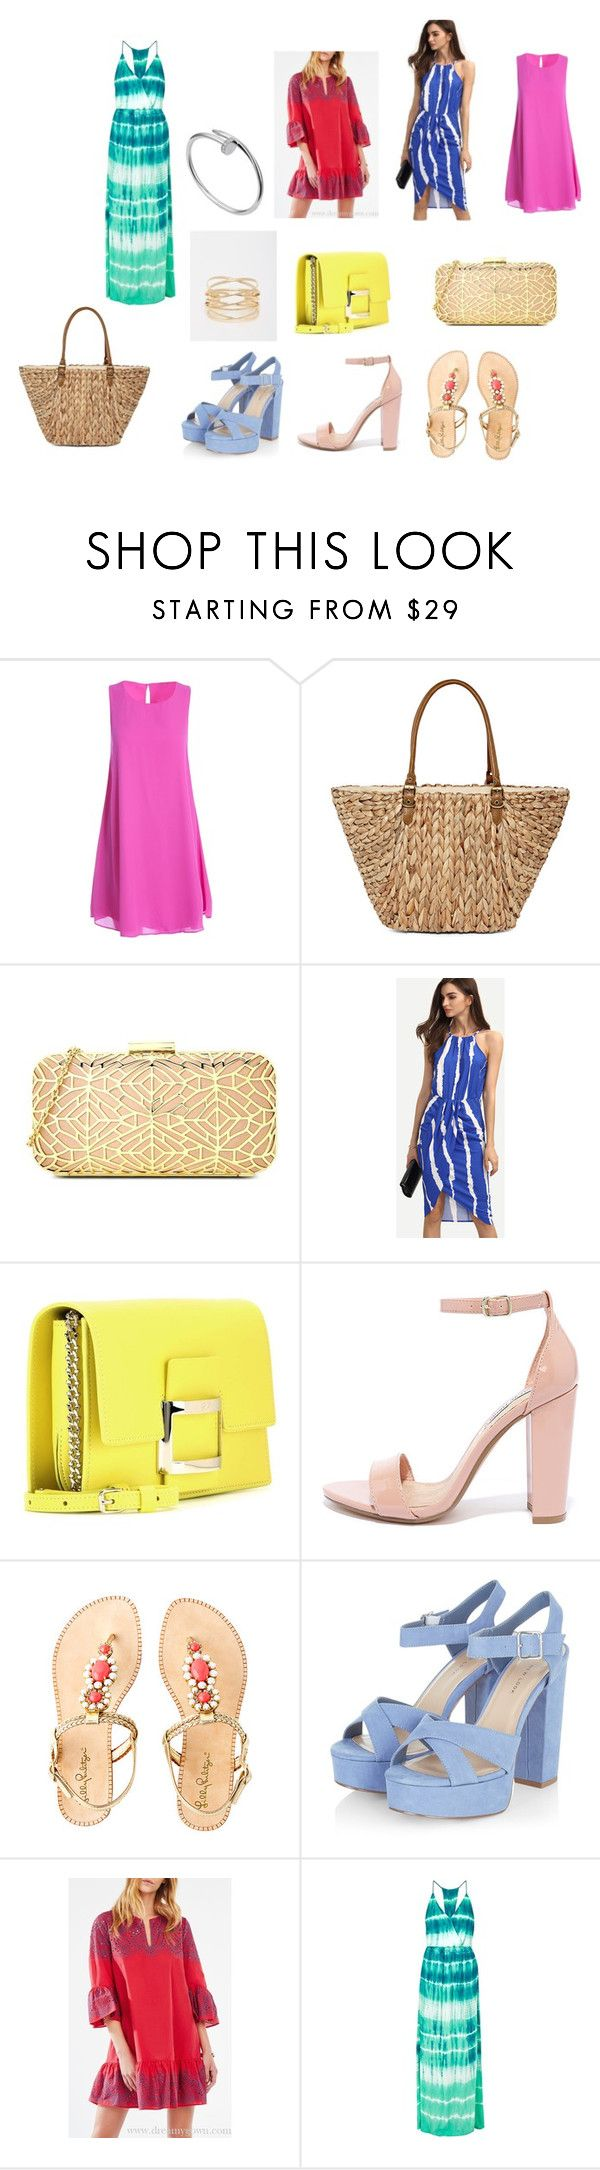 """кпк"" by katy-rock-1 on Polyvore featuring мода, Sans Souci, Straw Studios, Love Moschino, Roger Vivier, Steve Madden, Lilly Pulitzer, BCBGMAXAZRIA, River Island и Young, Fabulous & Broke"